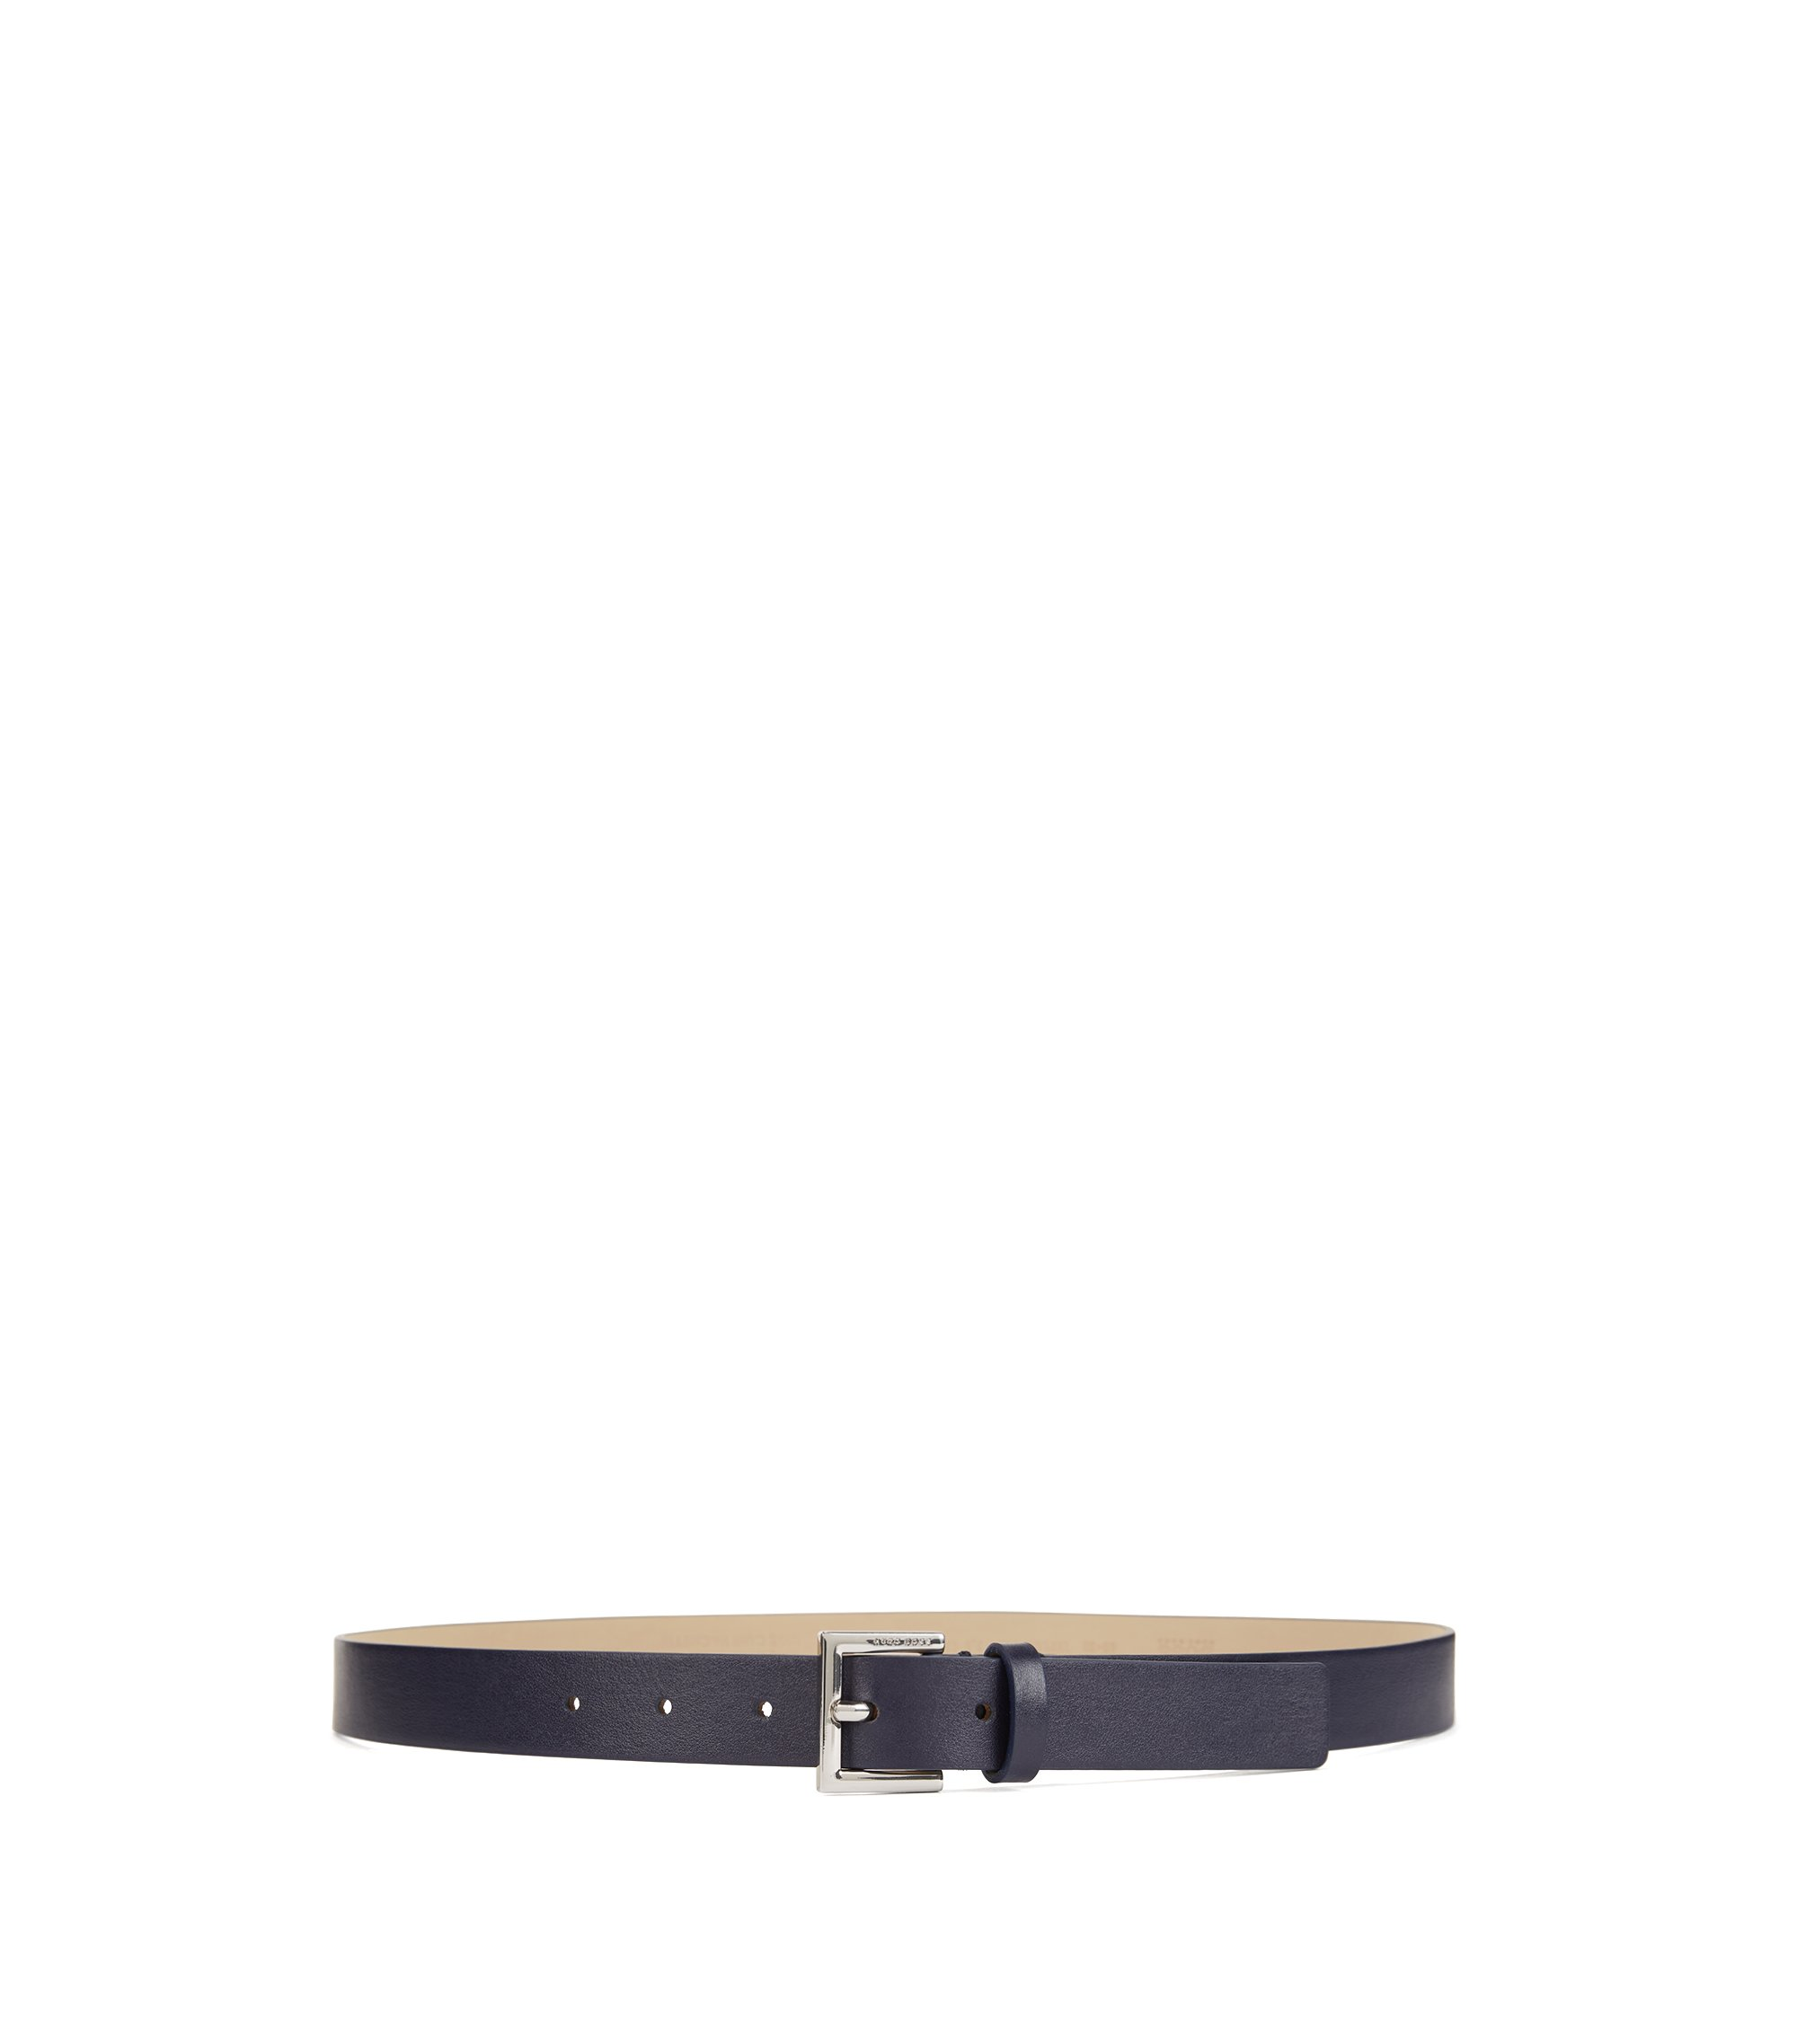 Italian-leather belt with logo-engraved buckle, Blauw